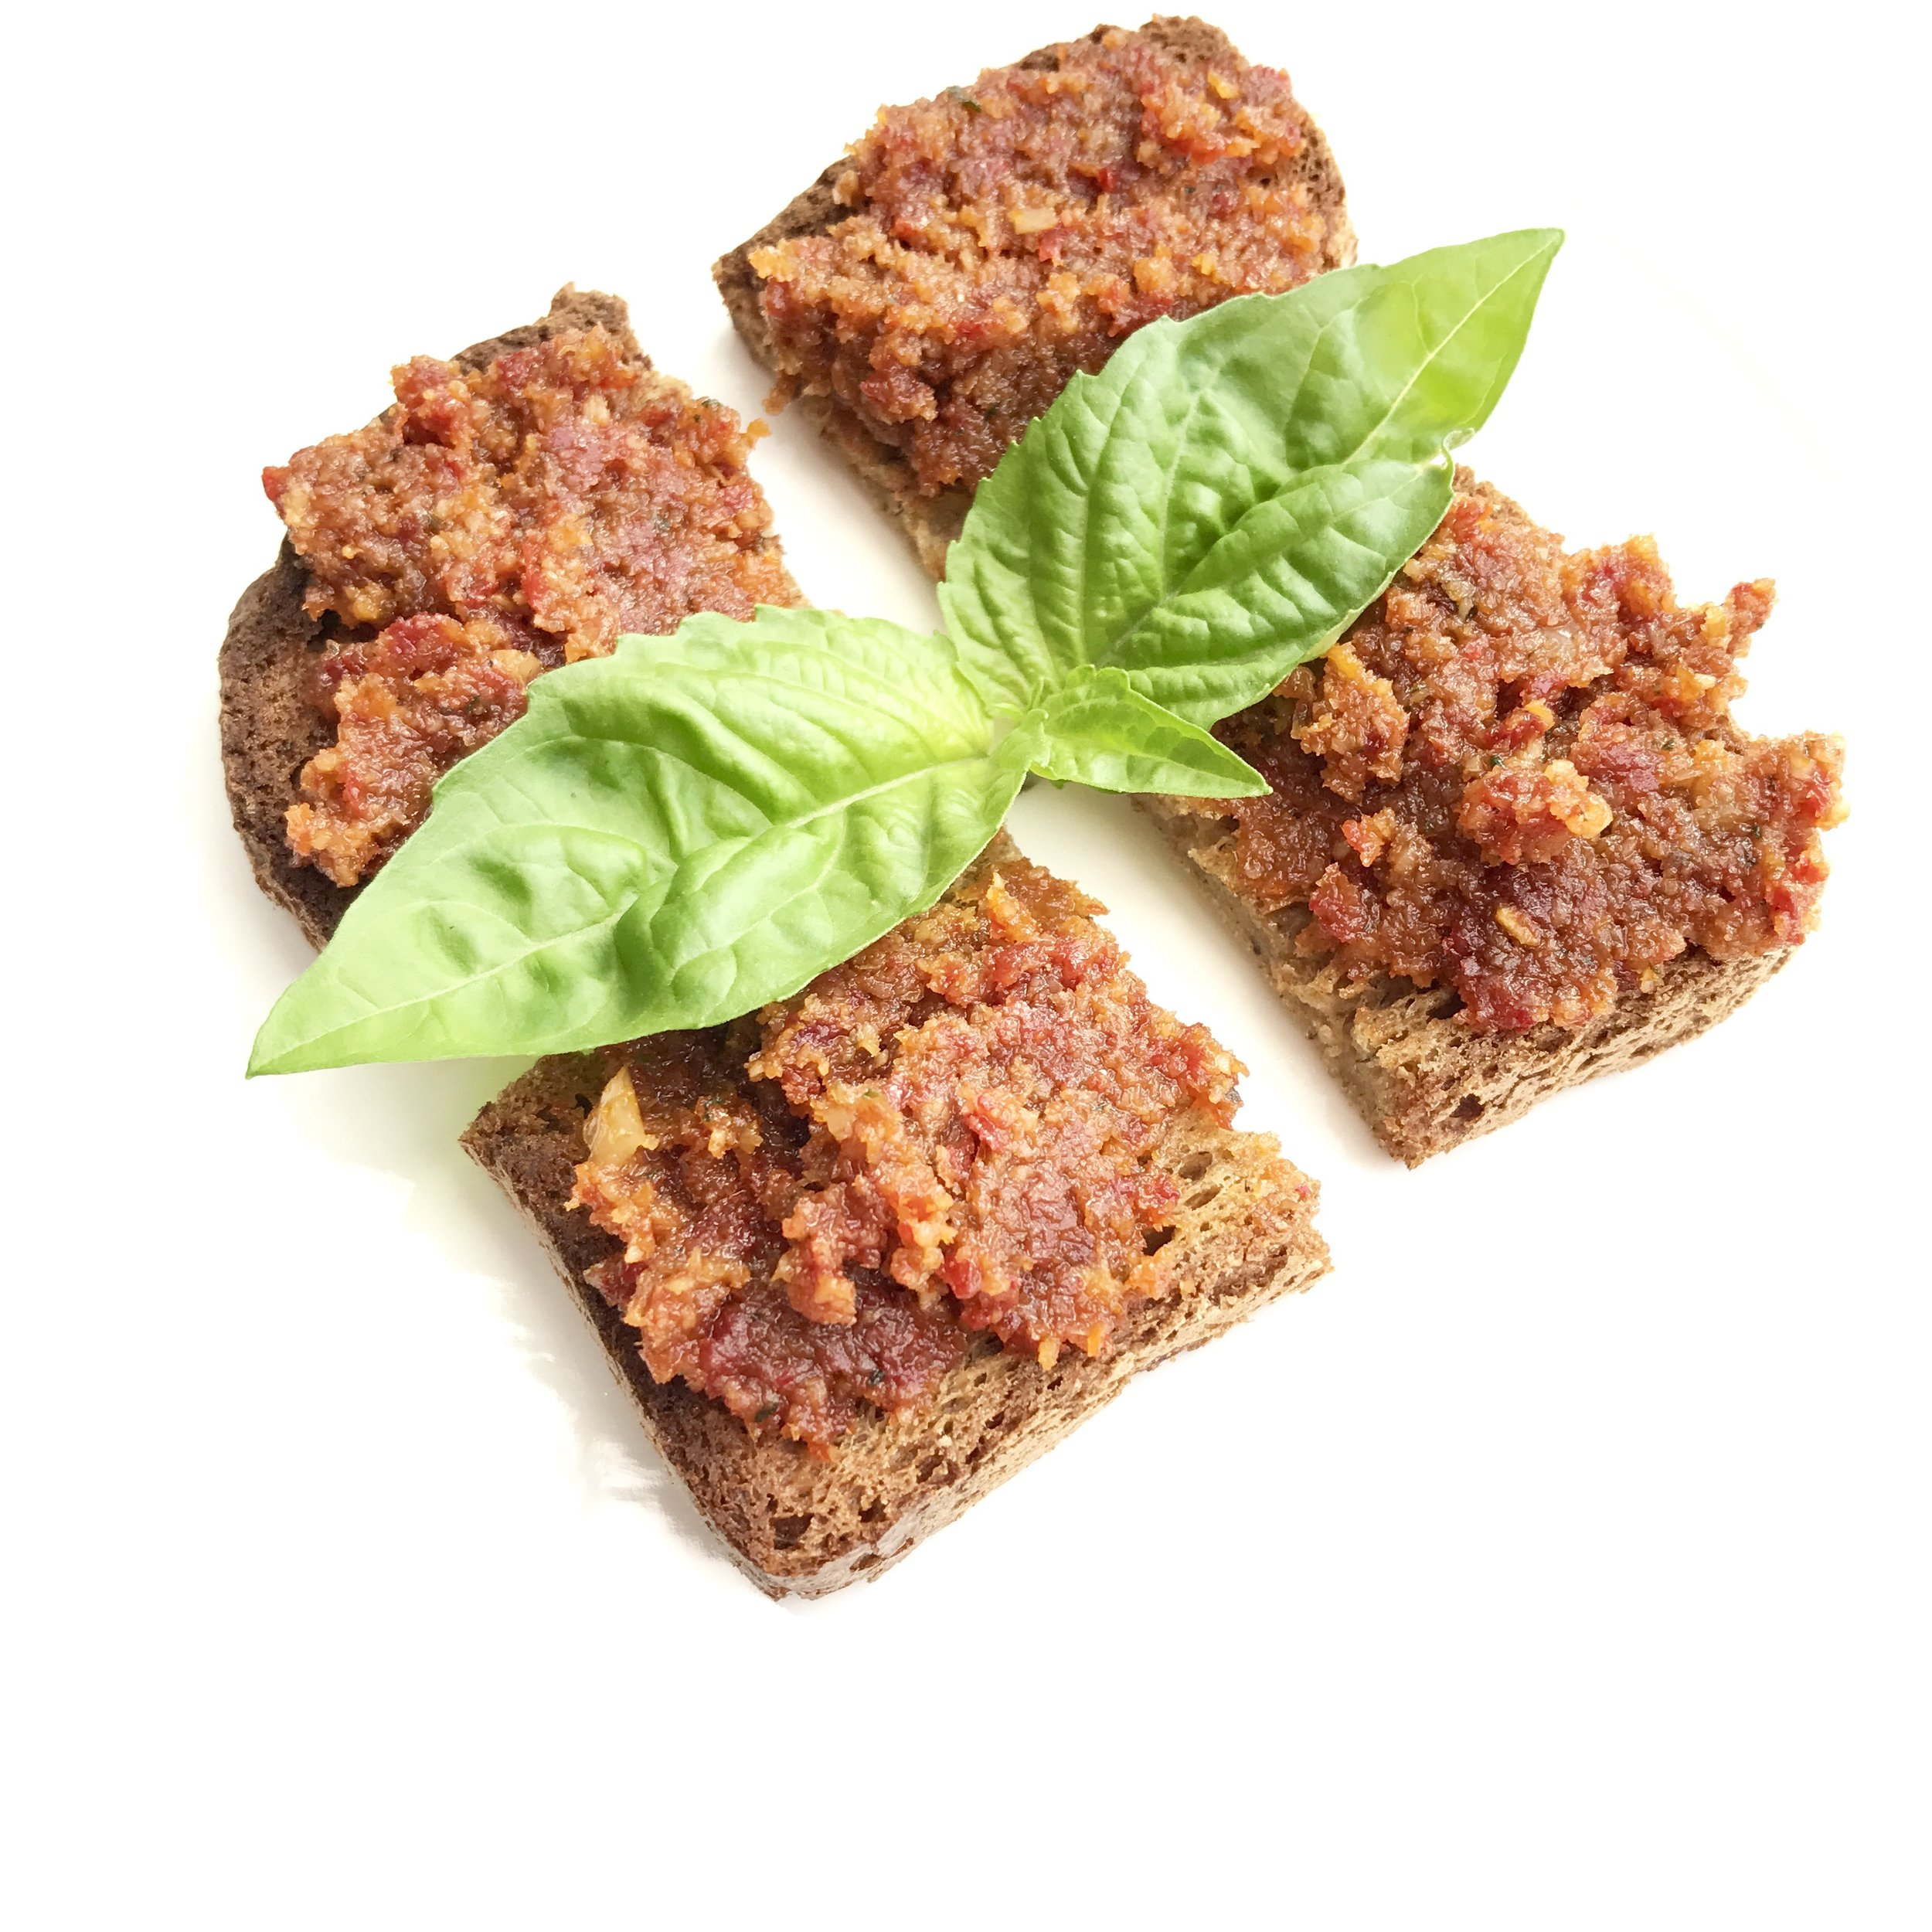 Sundried tomatoes, soaked walnuts, garlic, salt, fresh basil and sage blend up to make the most perfect sweet and savory pate. Pictured served on gluten-free toast.